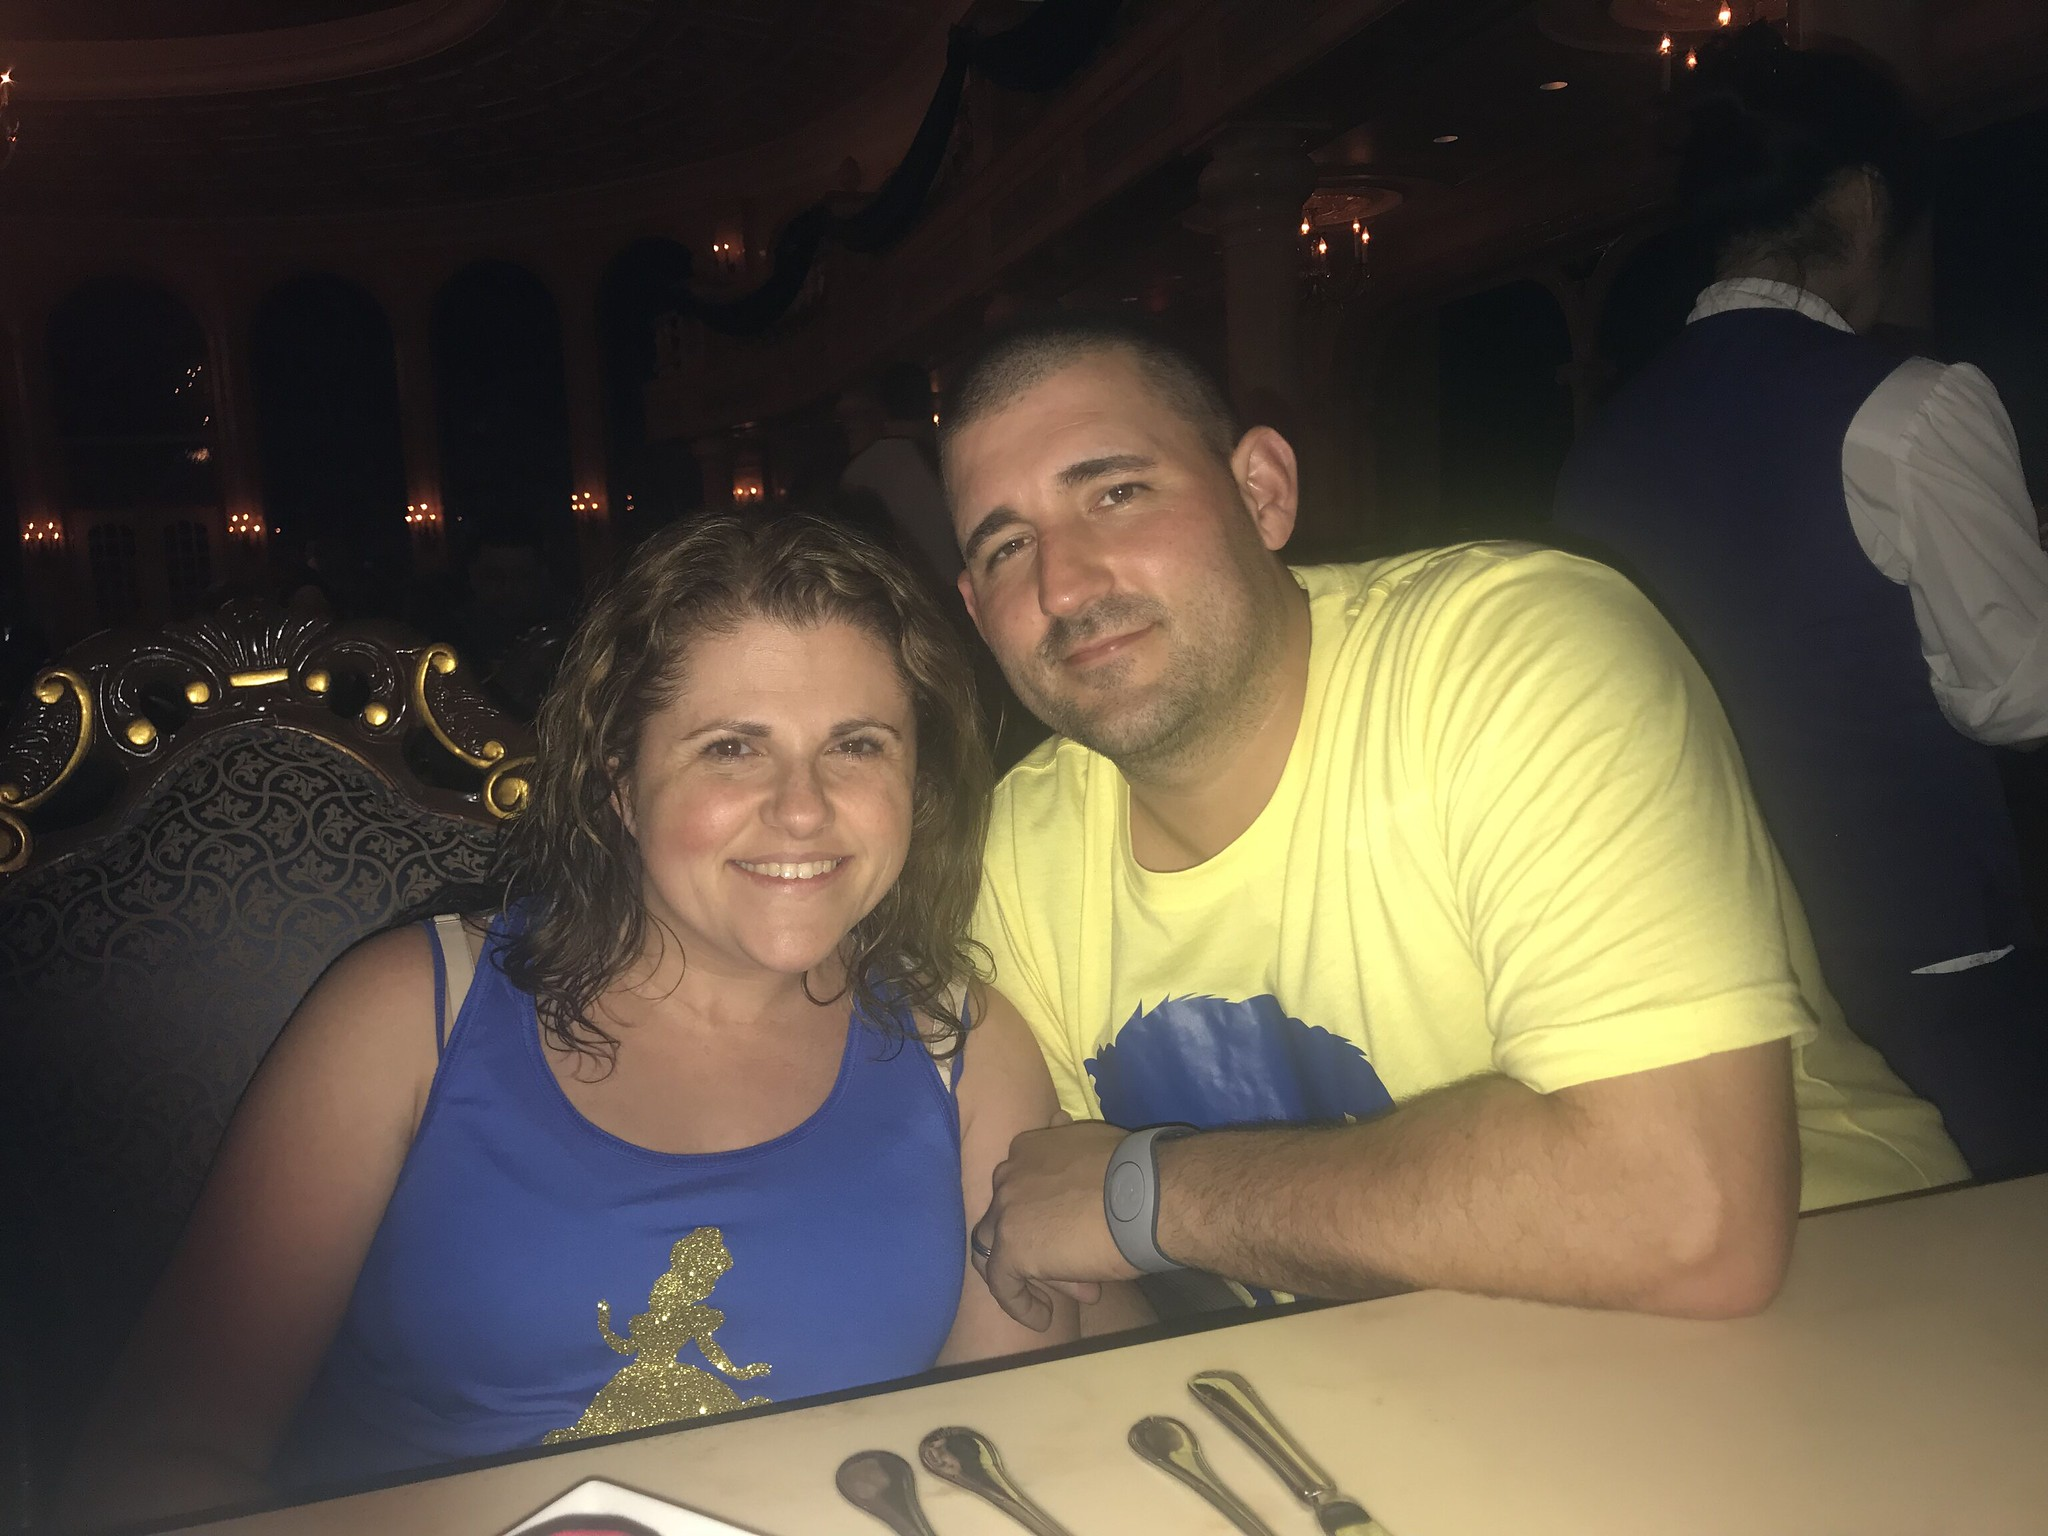 Be Our Guest Date night at Magic Kingdom